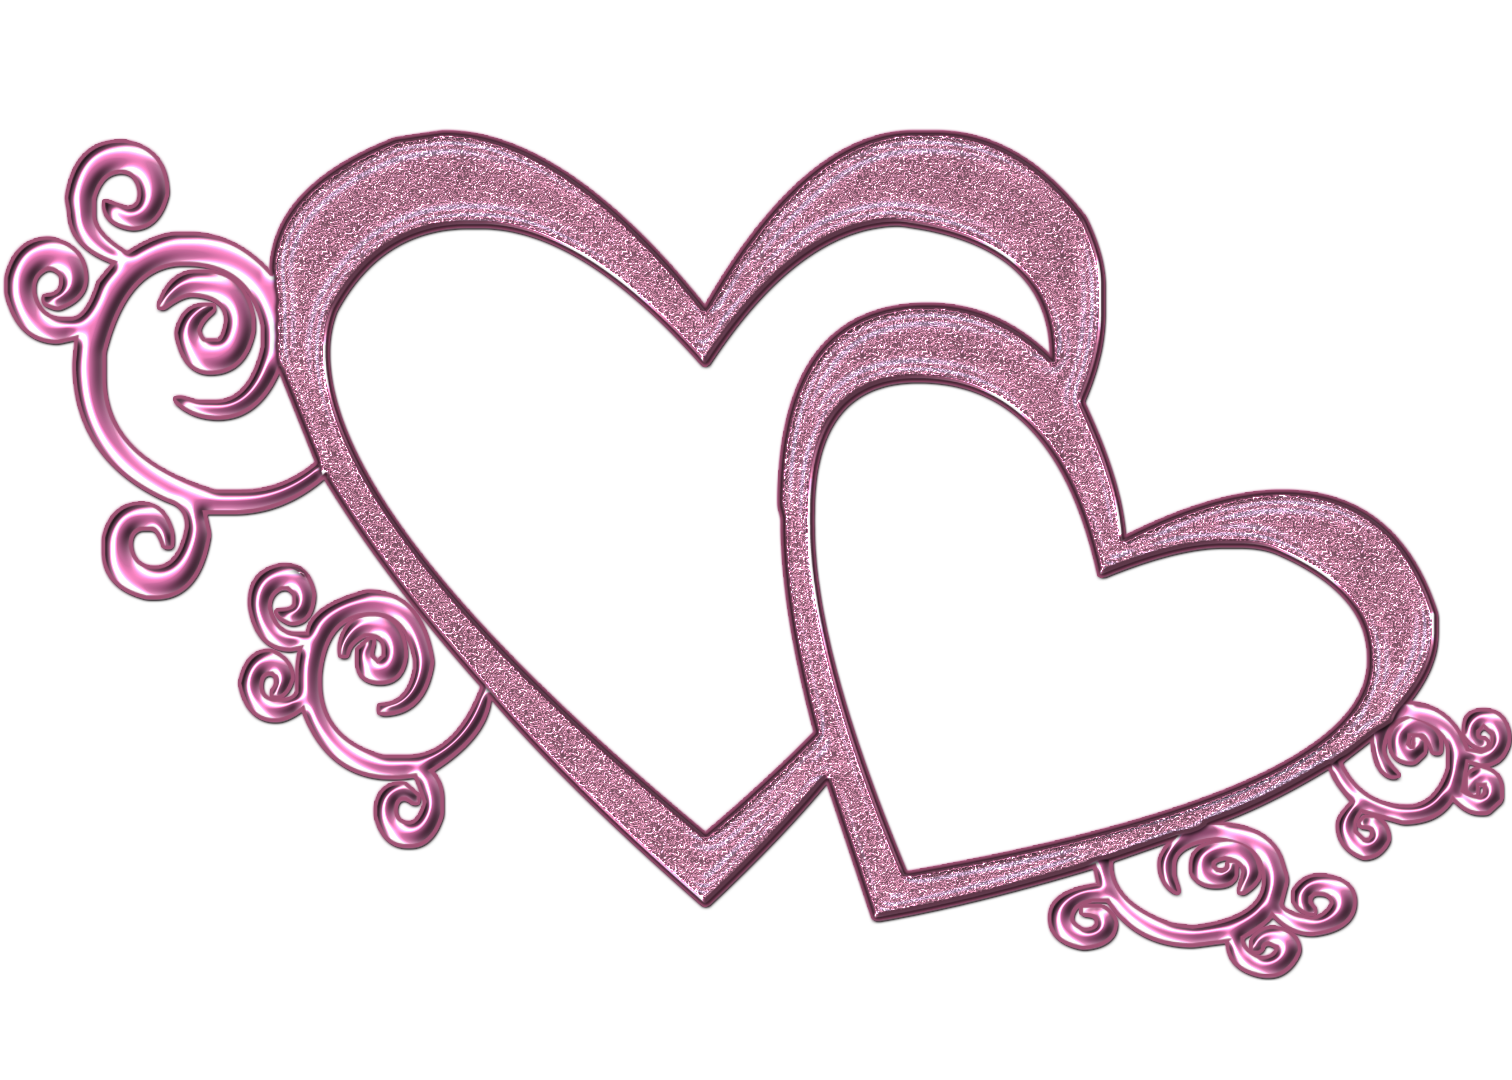 svg freeuse download Double heart clipart black and white. Wedding hearts free download